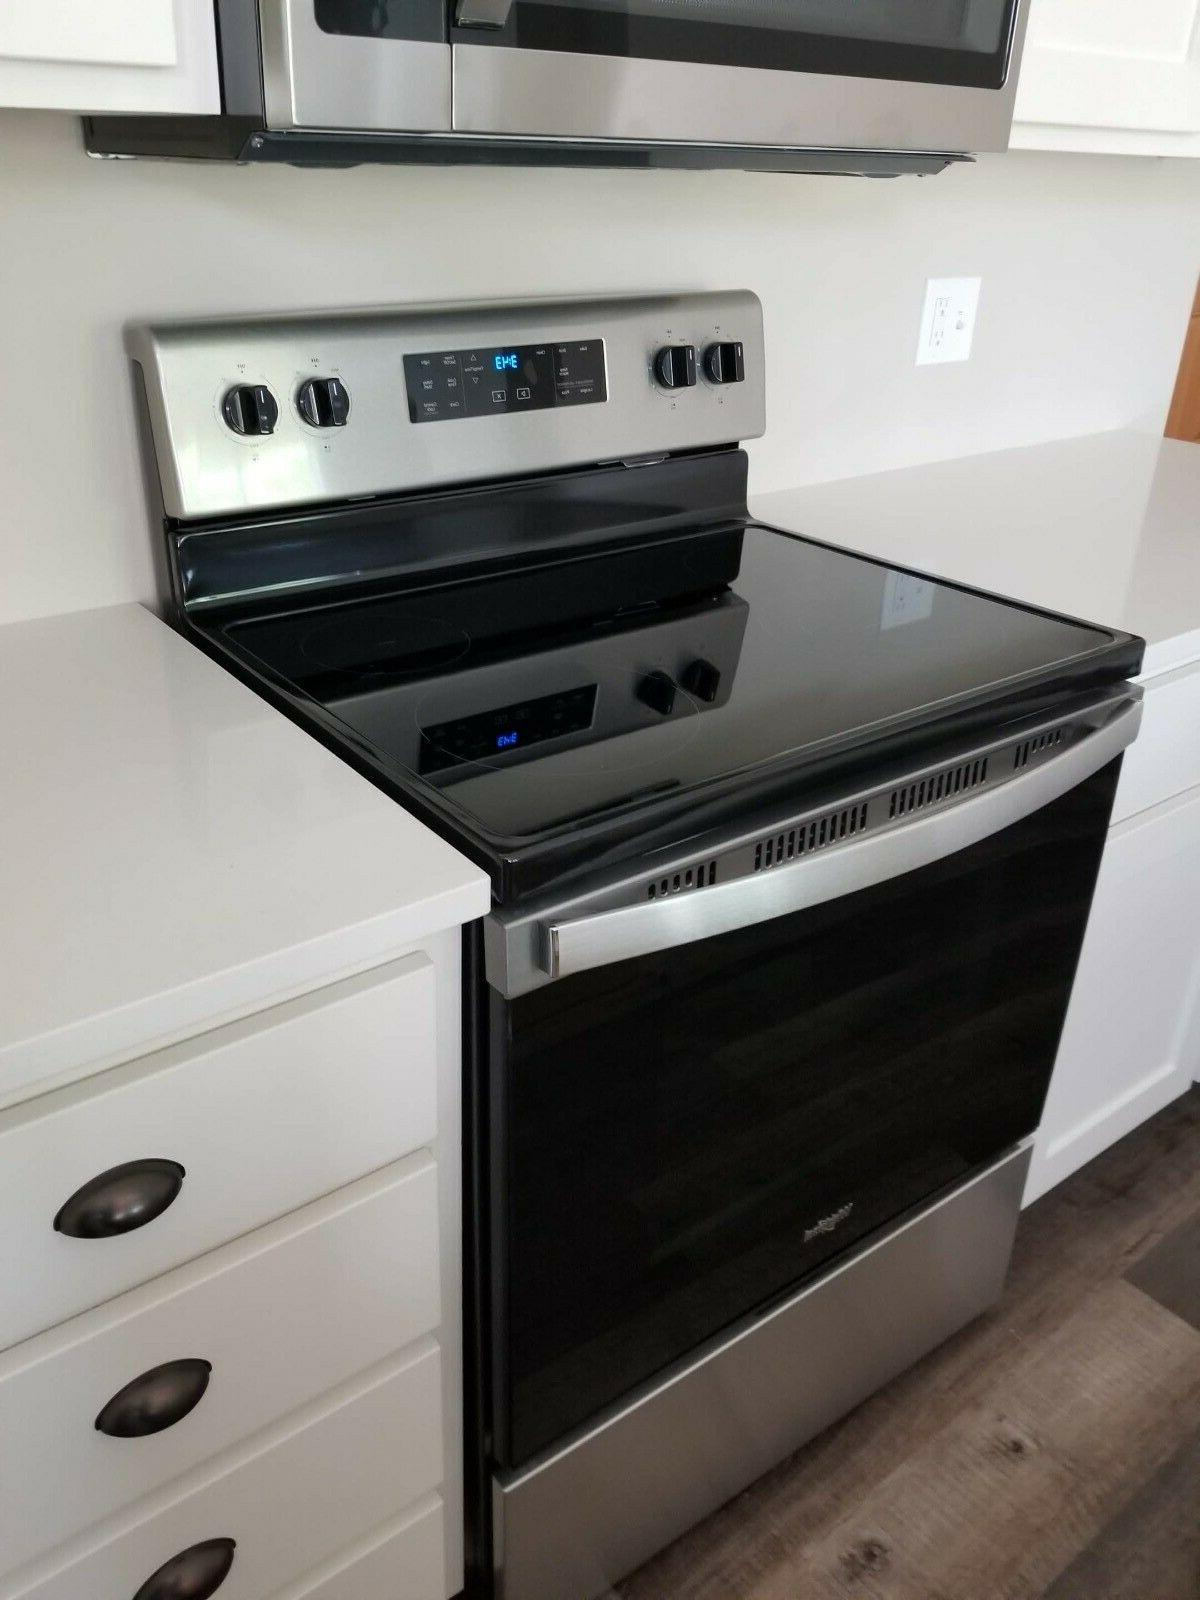 30 electric range stainless steel wfe515s0js0 brand